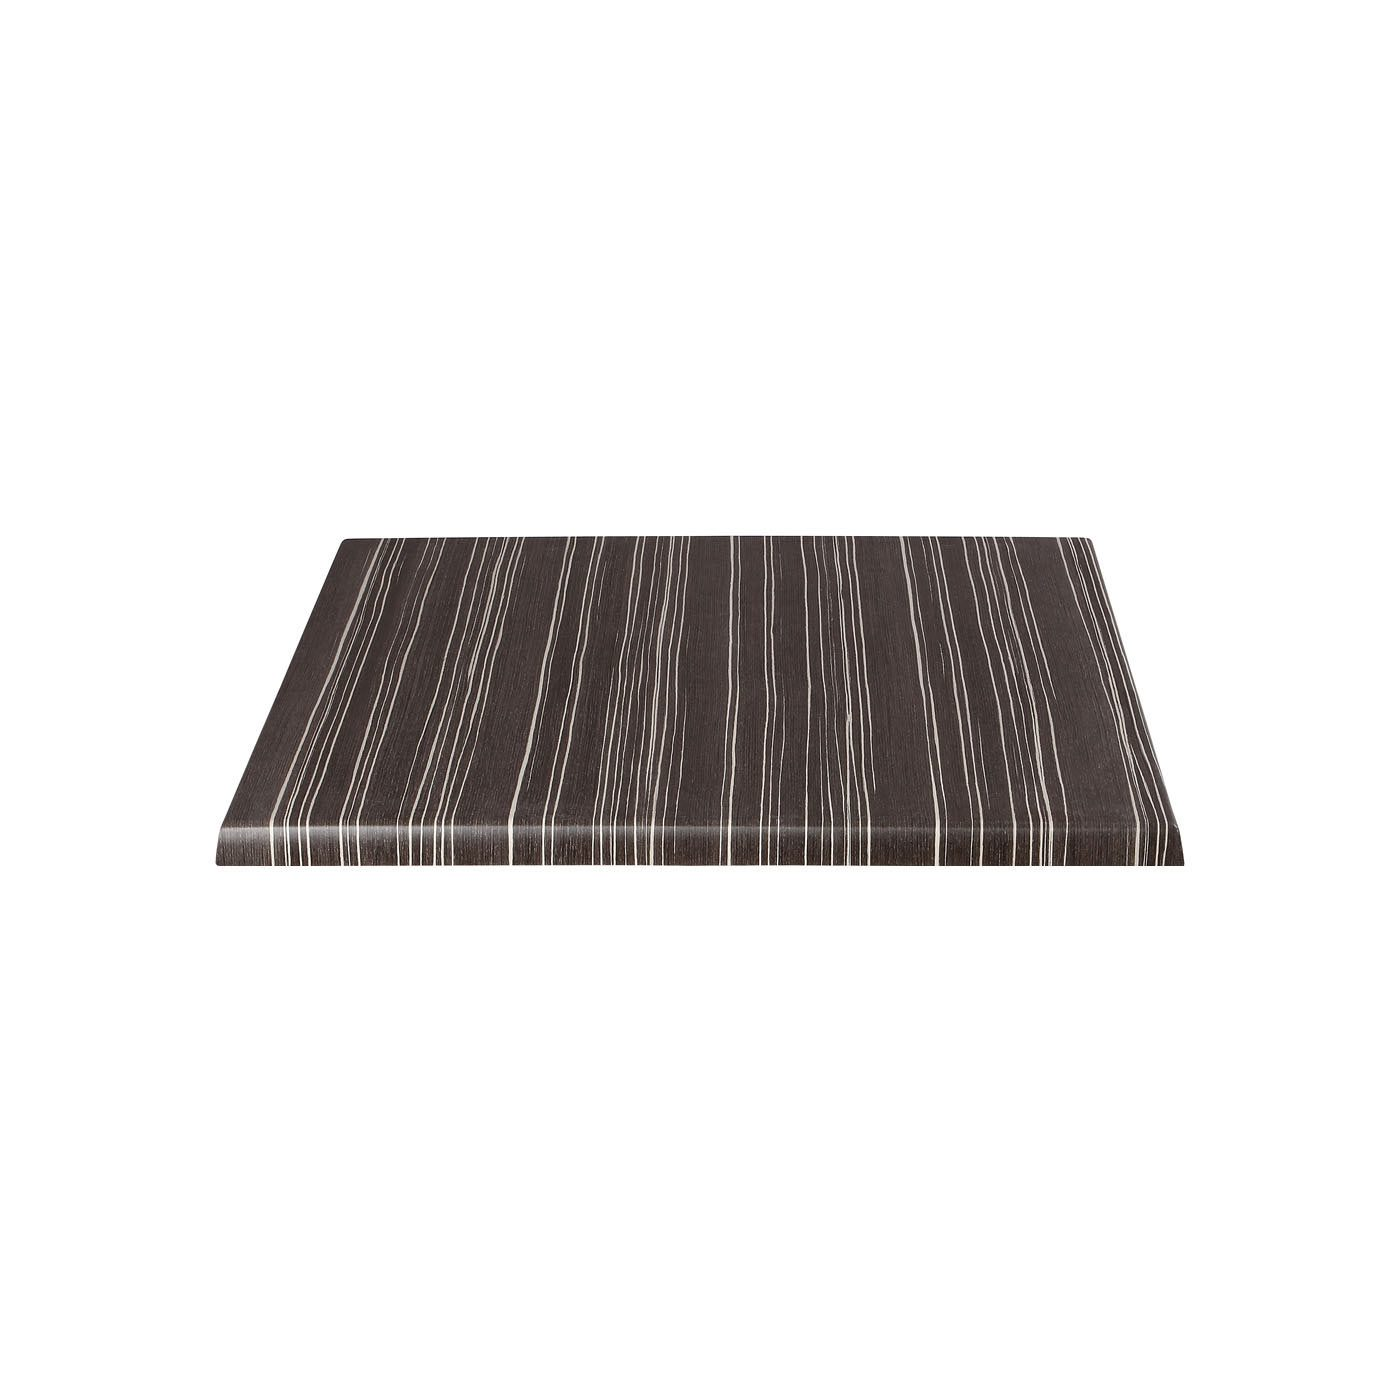 Werzalit Square Table Top, 6cm